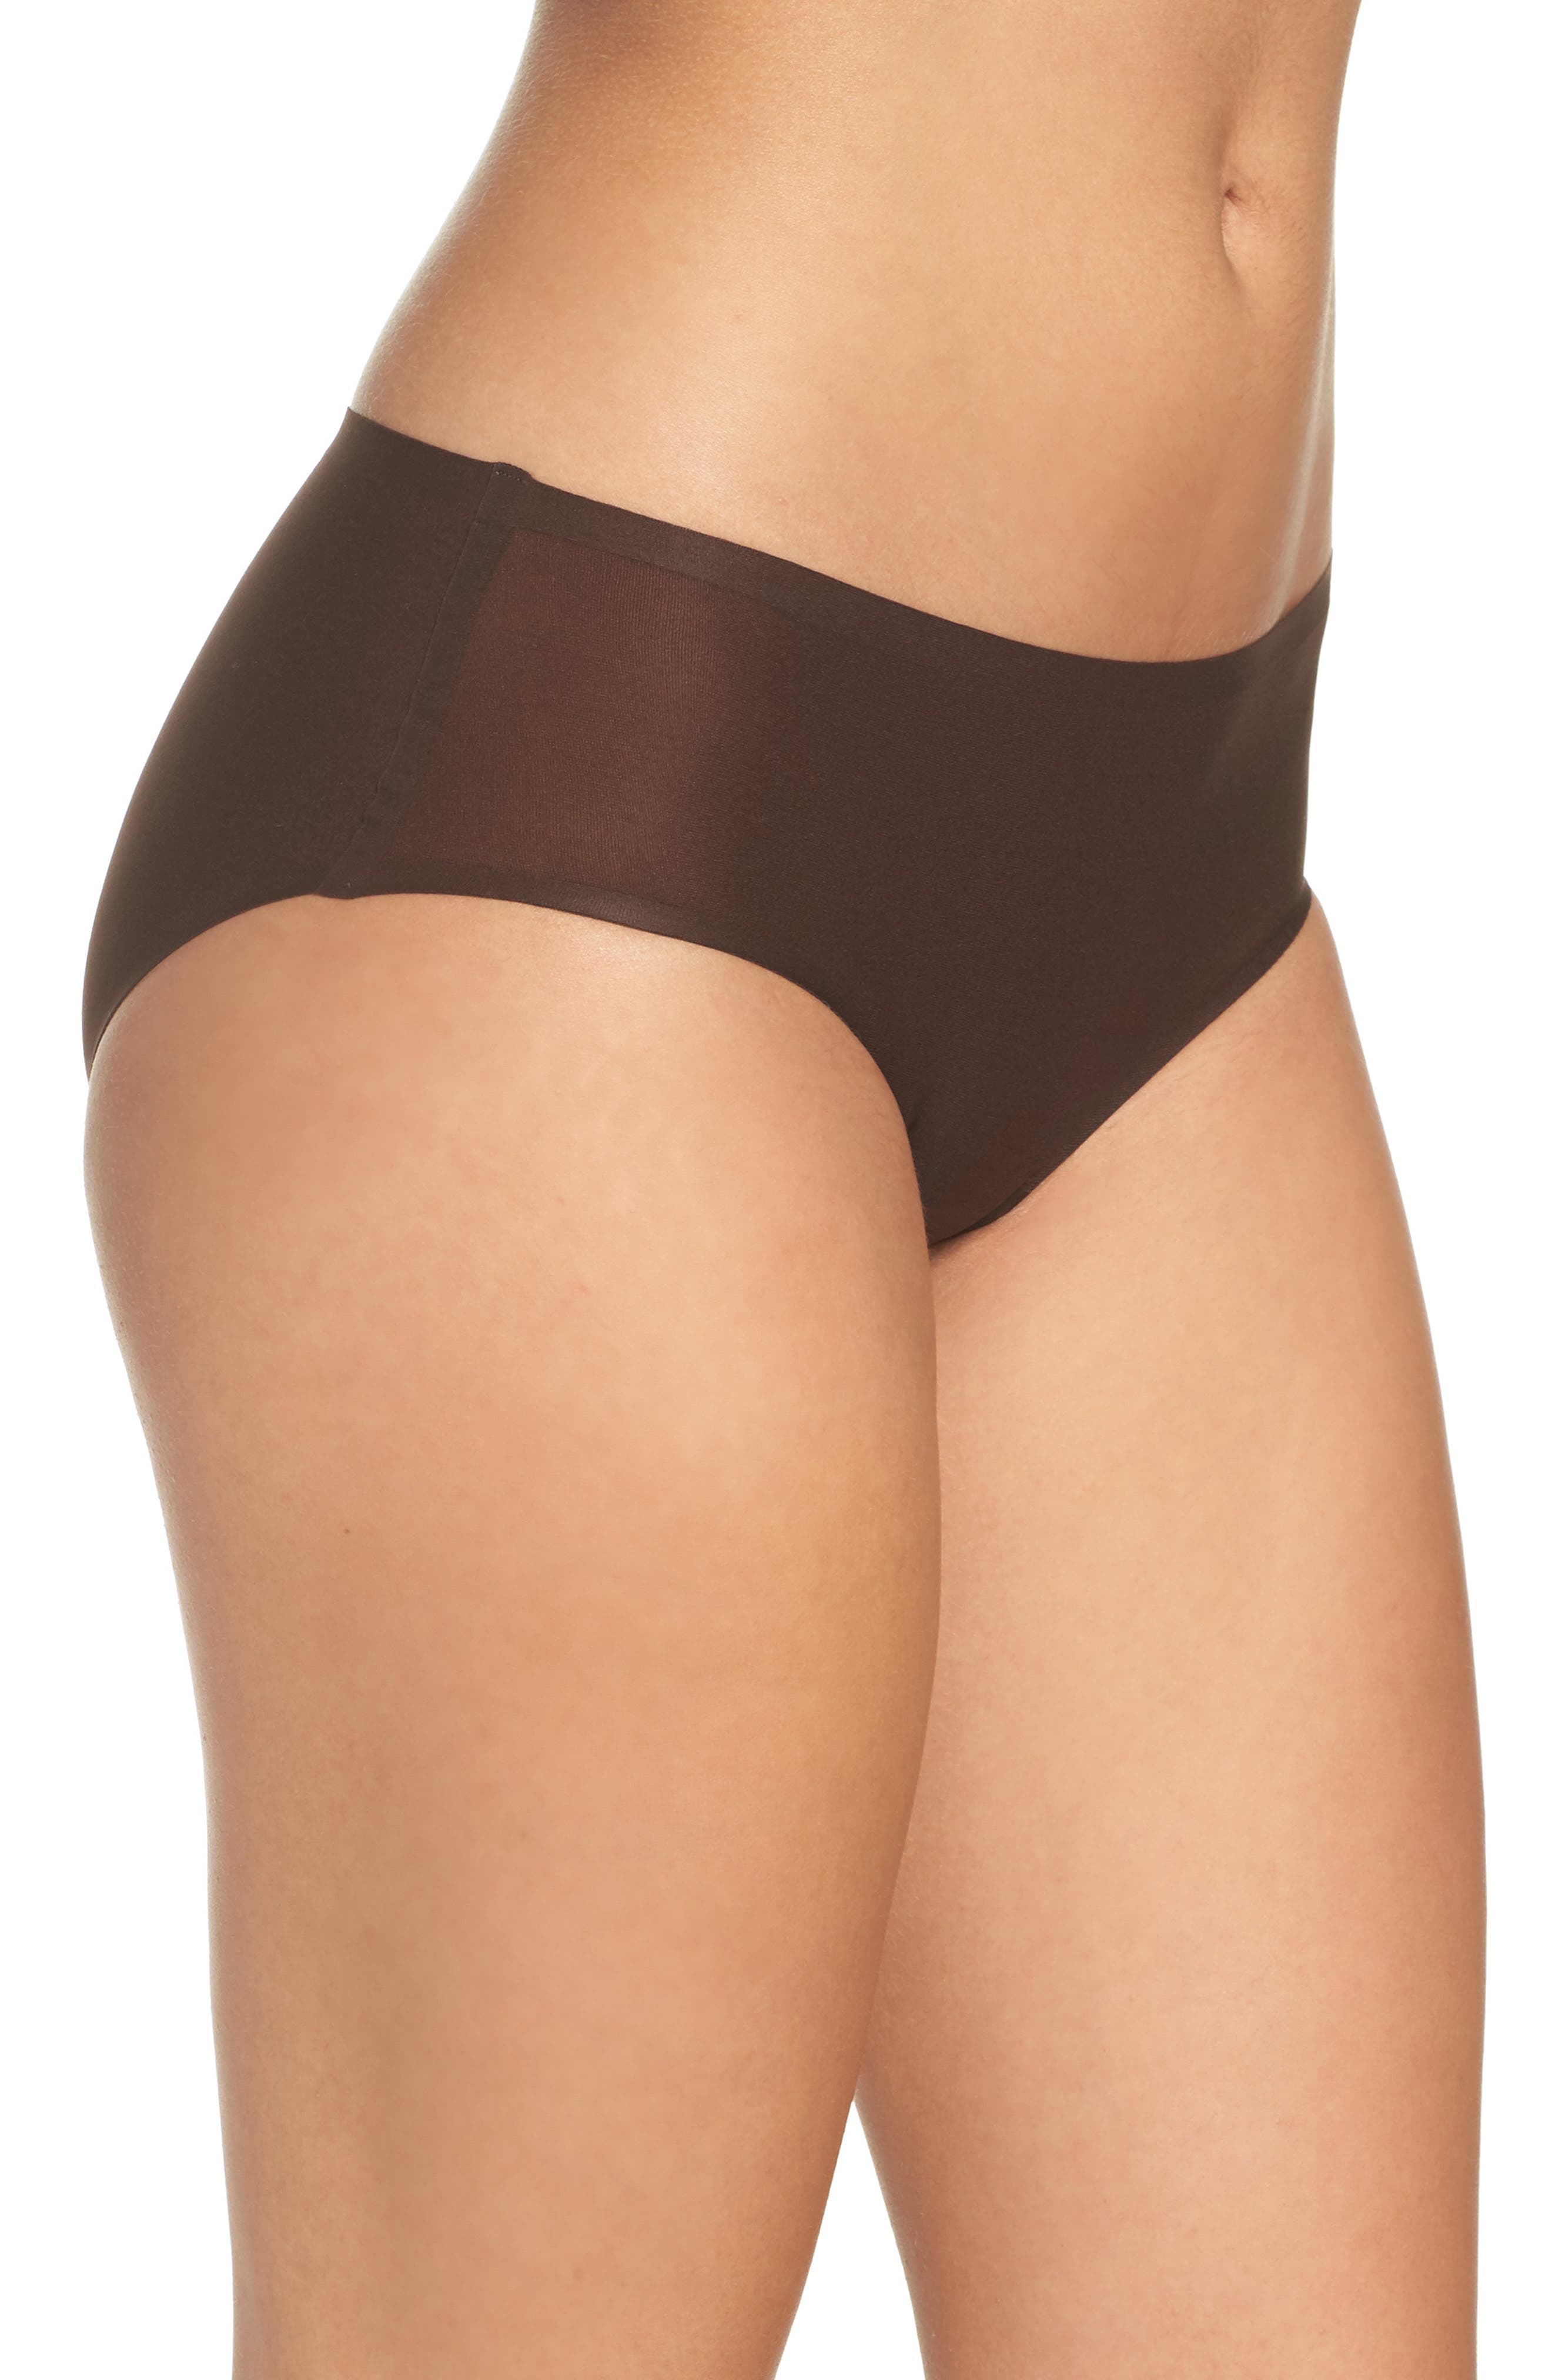 Soft Stretch Seamless Hipster Panties,                             Alternate thumbnail 3, color,                             BROWN